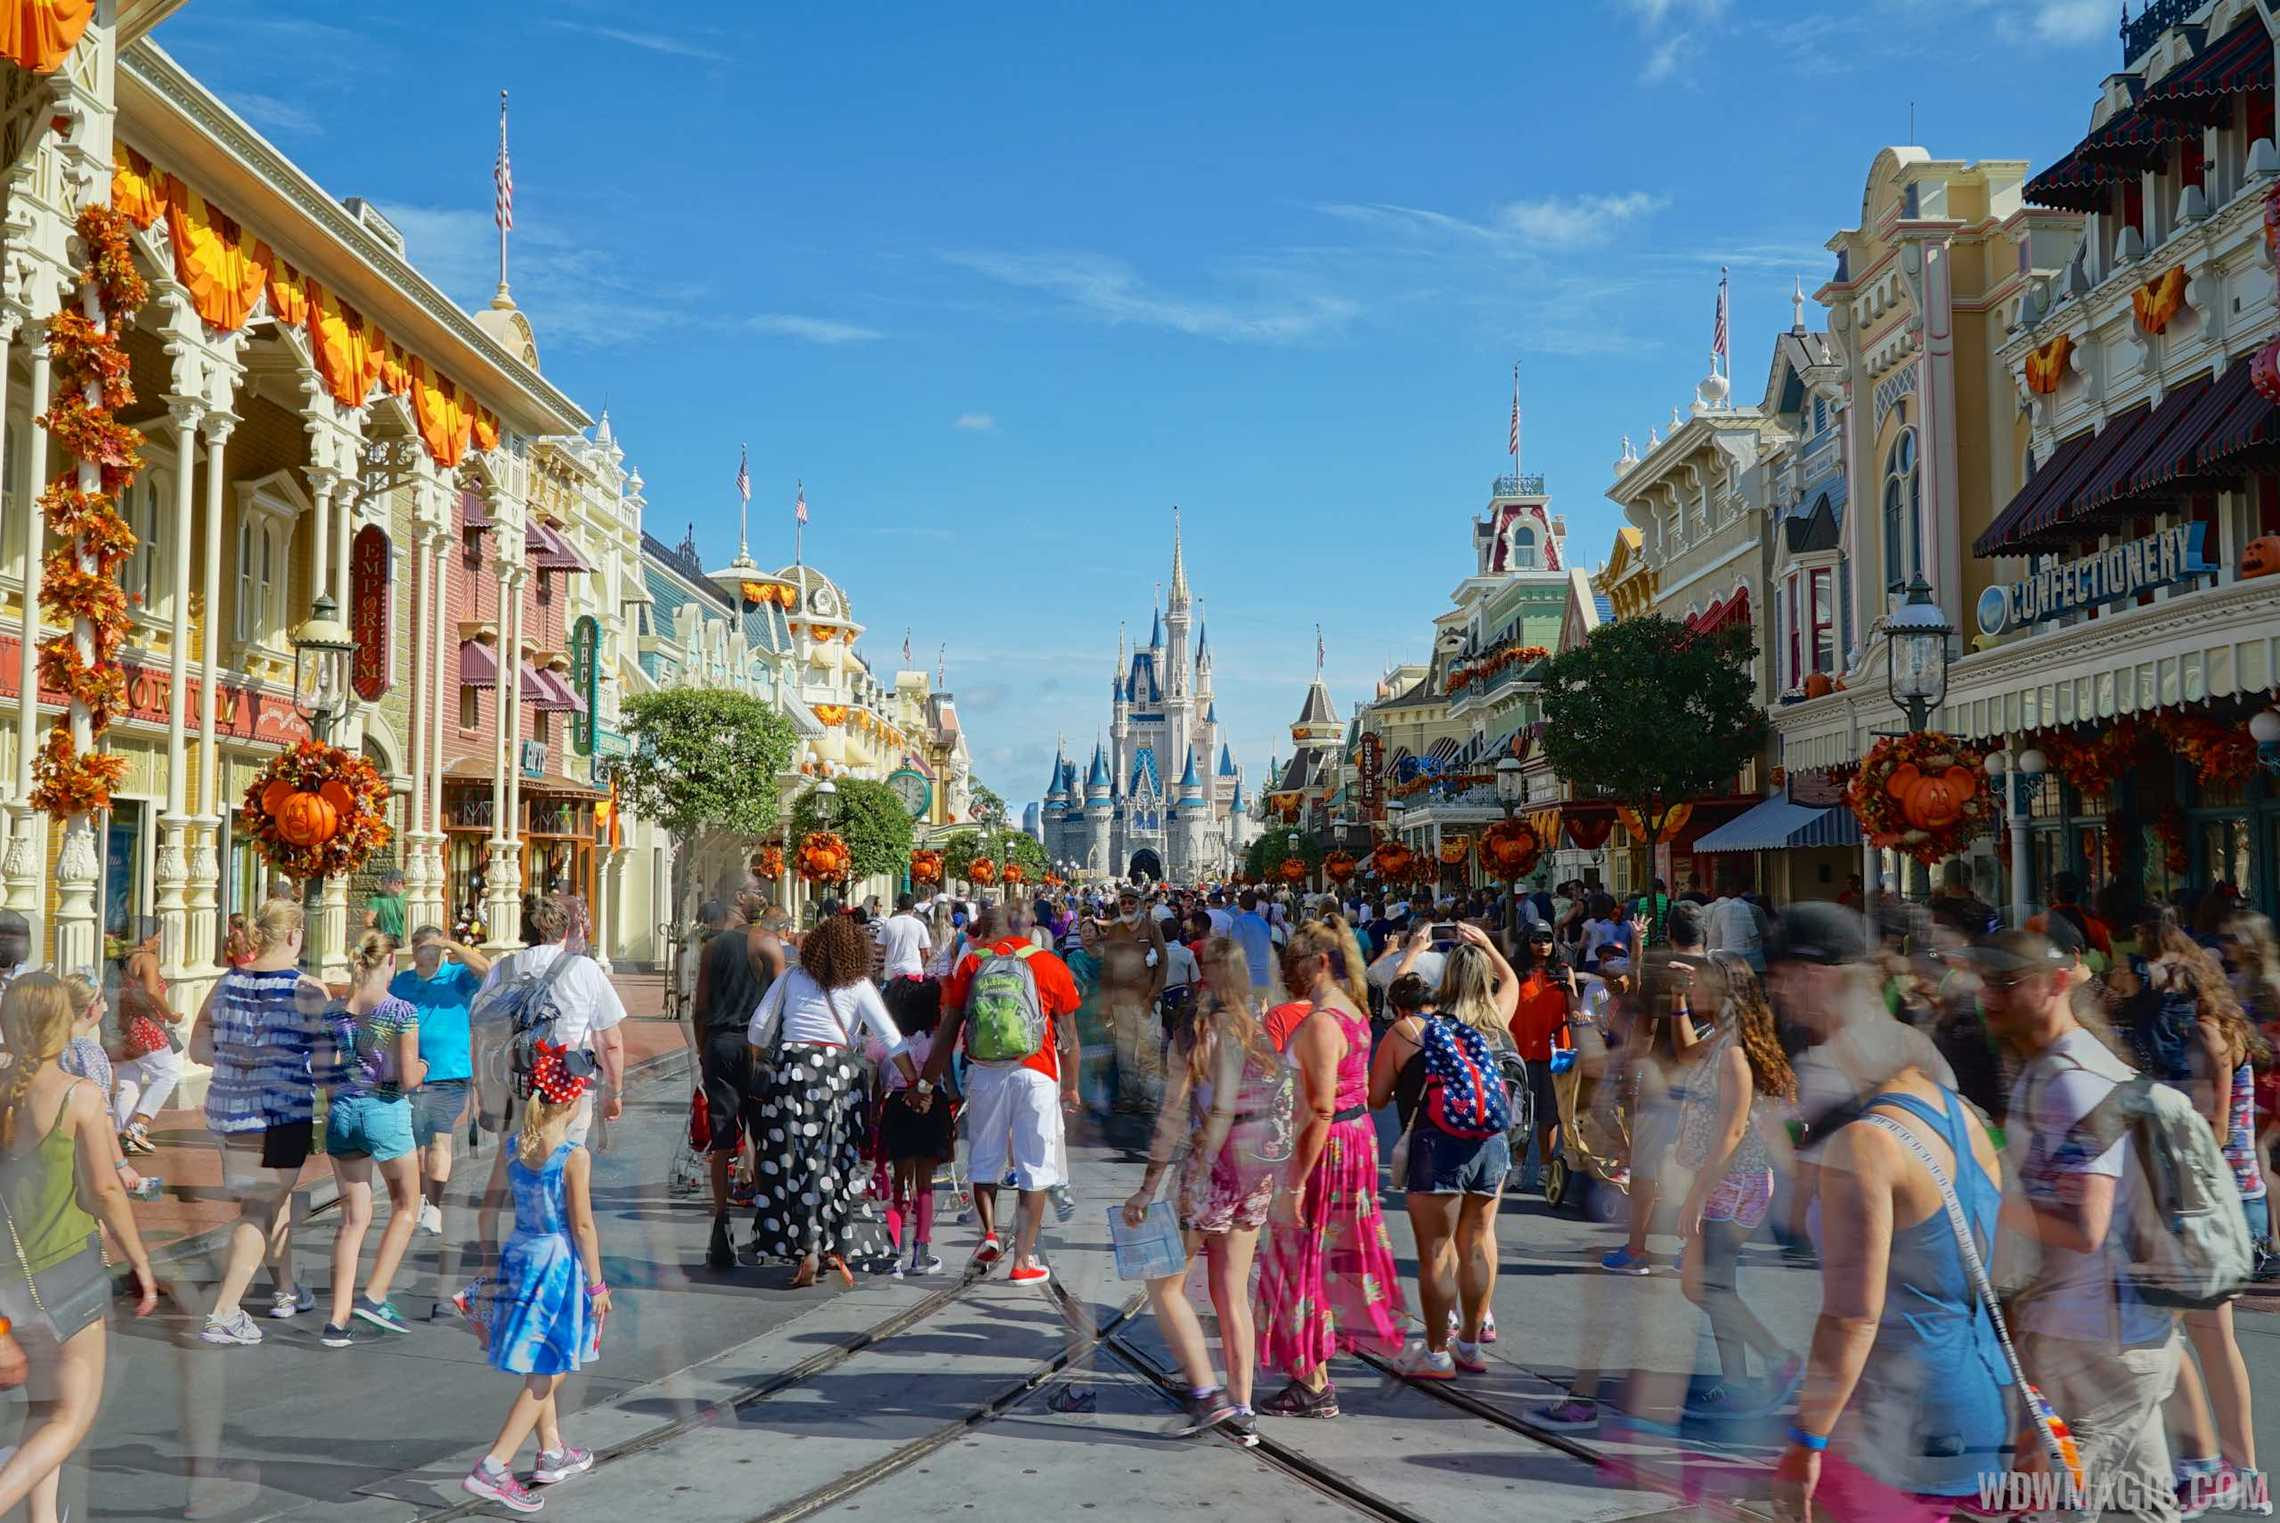 photos fall has arrived at the magic kingdom see the halloween and fall decor